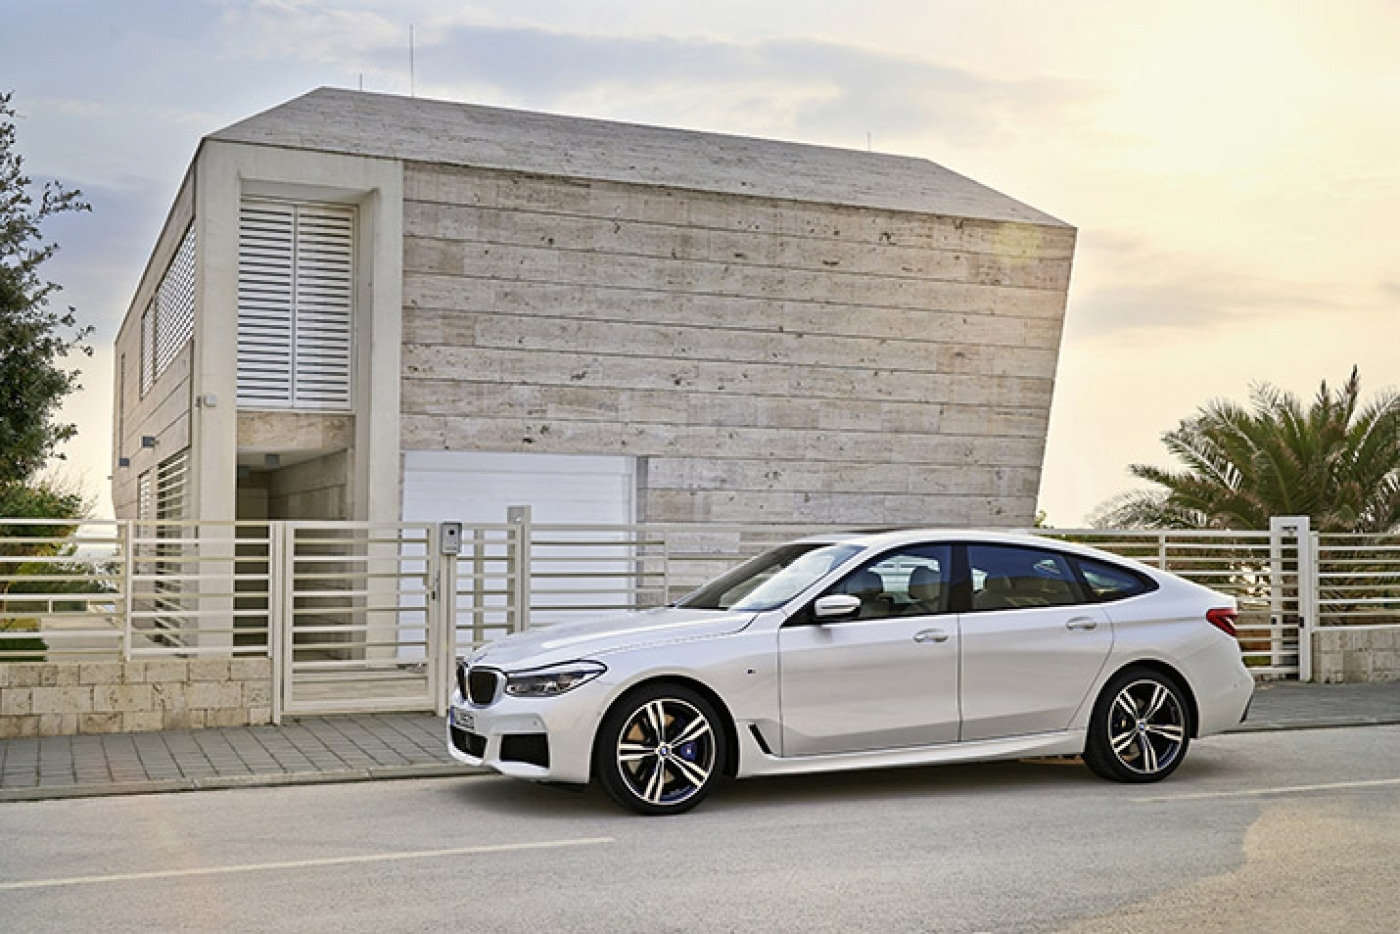 6 Series Gt Side On View 715X477 1400 934 S C1